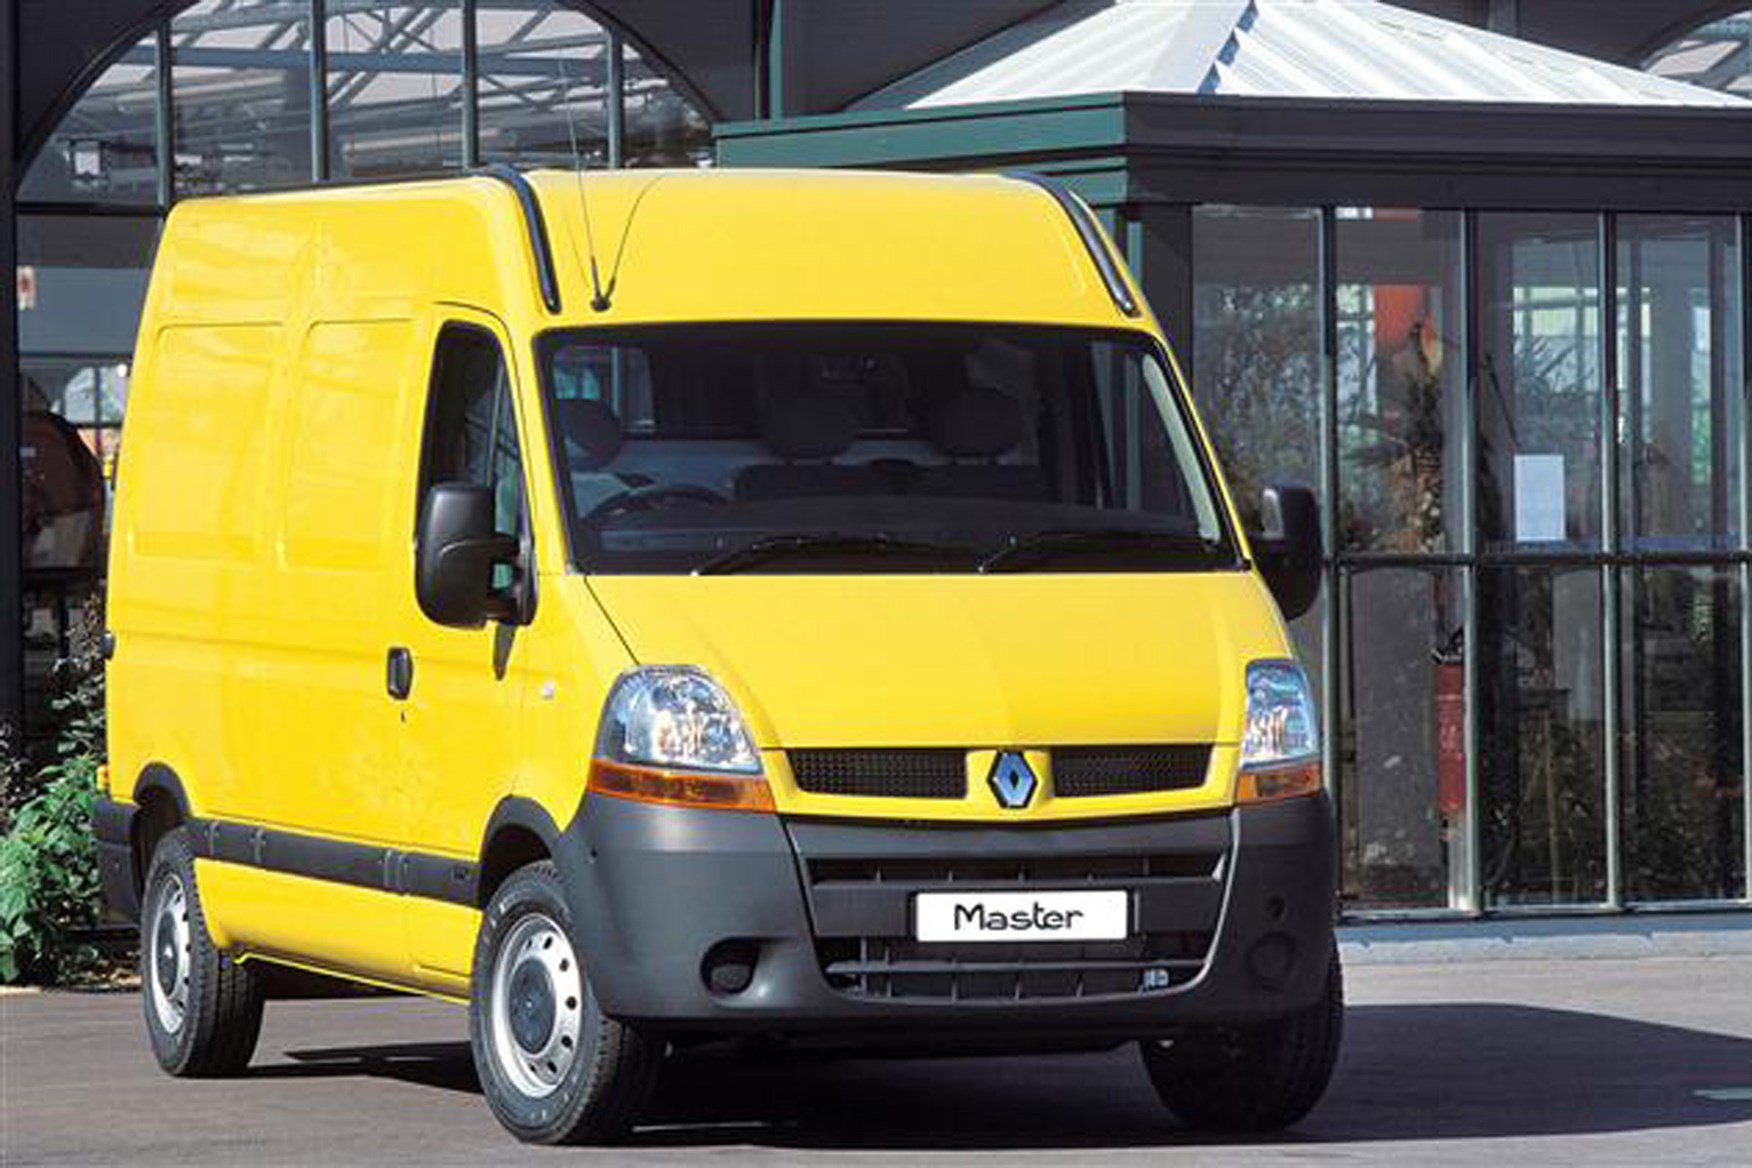 Renault Master review on Parkers Vans - load area and payload